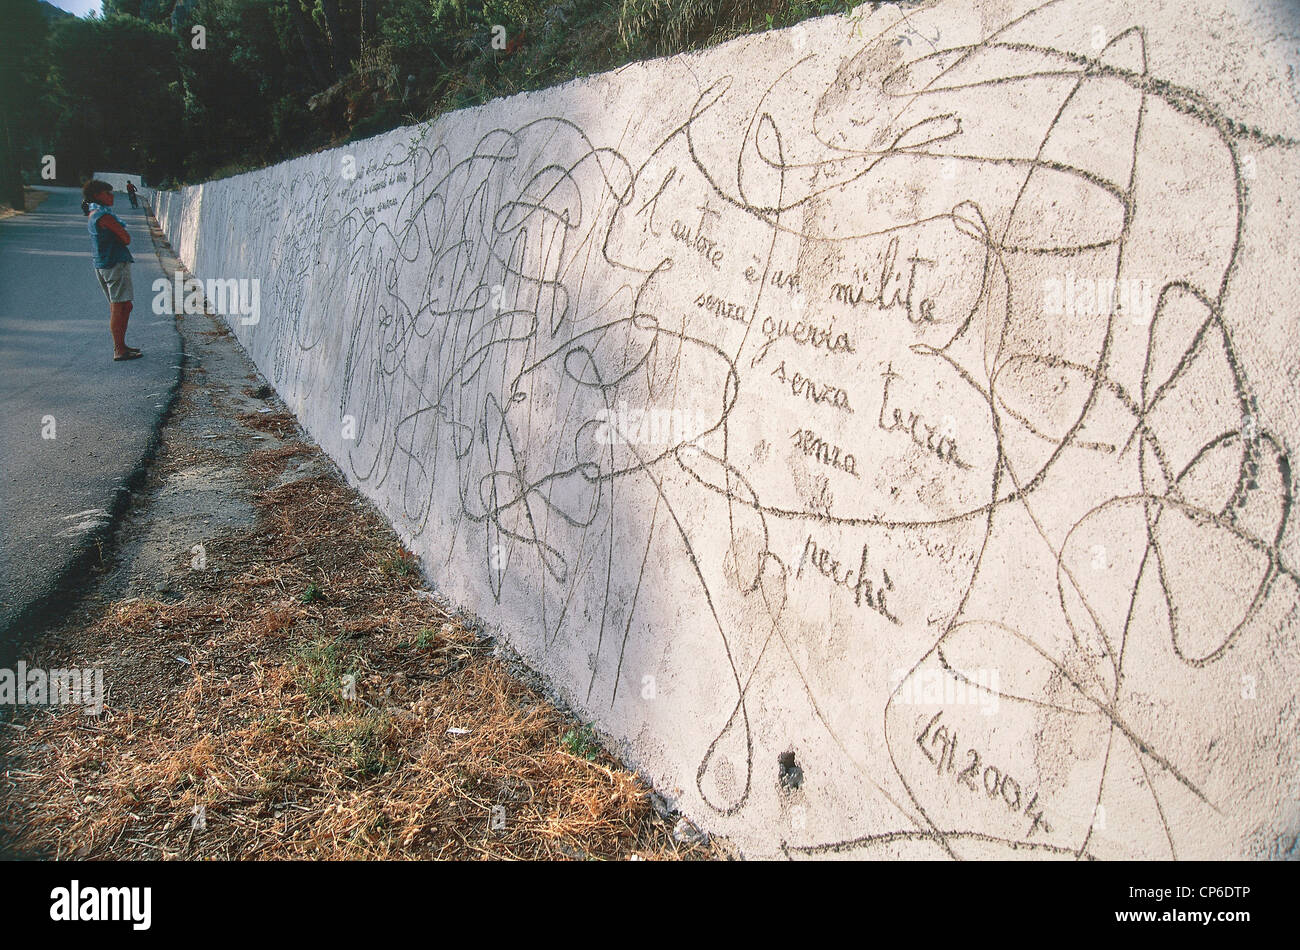 Sardinia - Ulassai (Og). The 'Wall of entanglement', 2004, by artist Maria Lai, along the road leading to - Stock Image